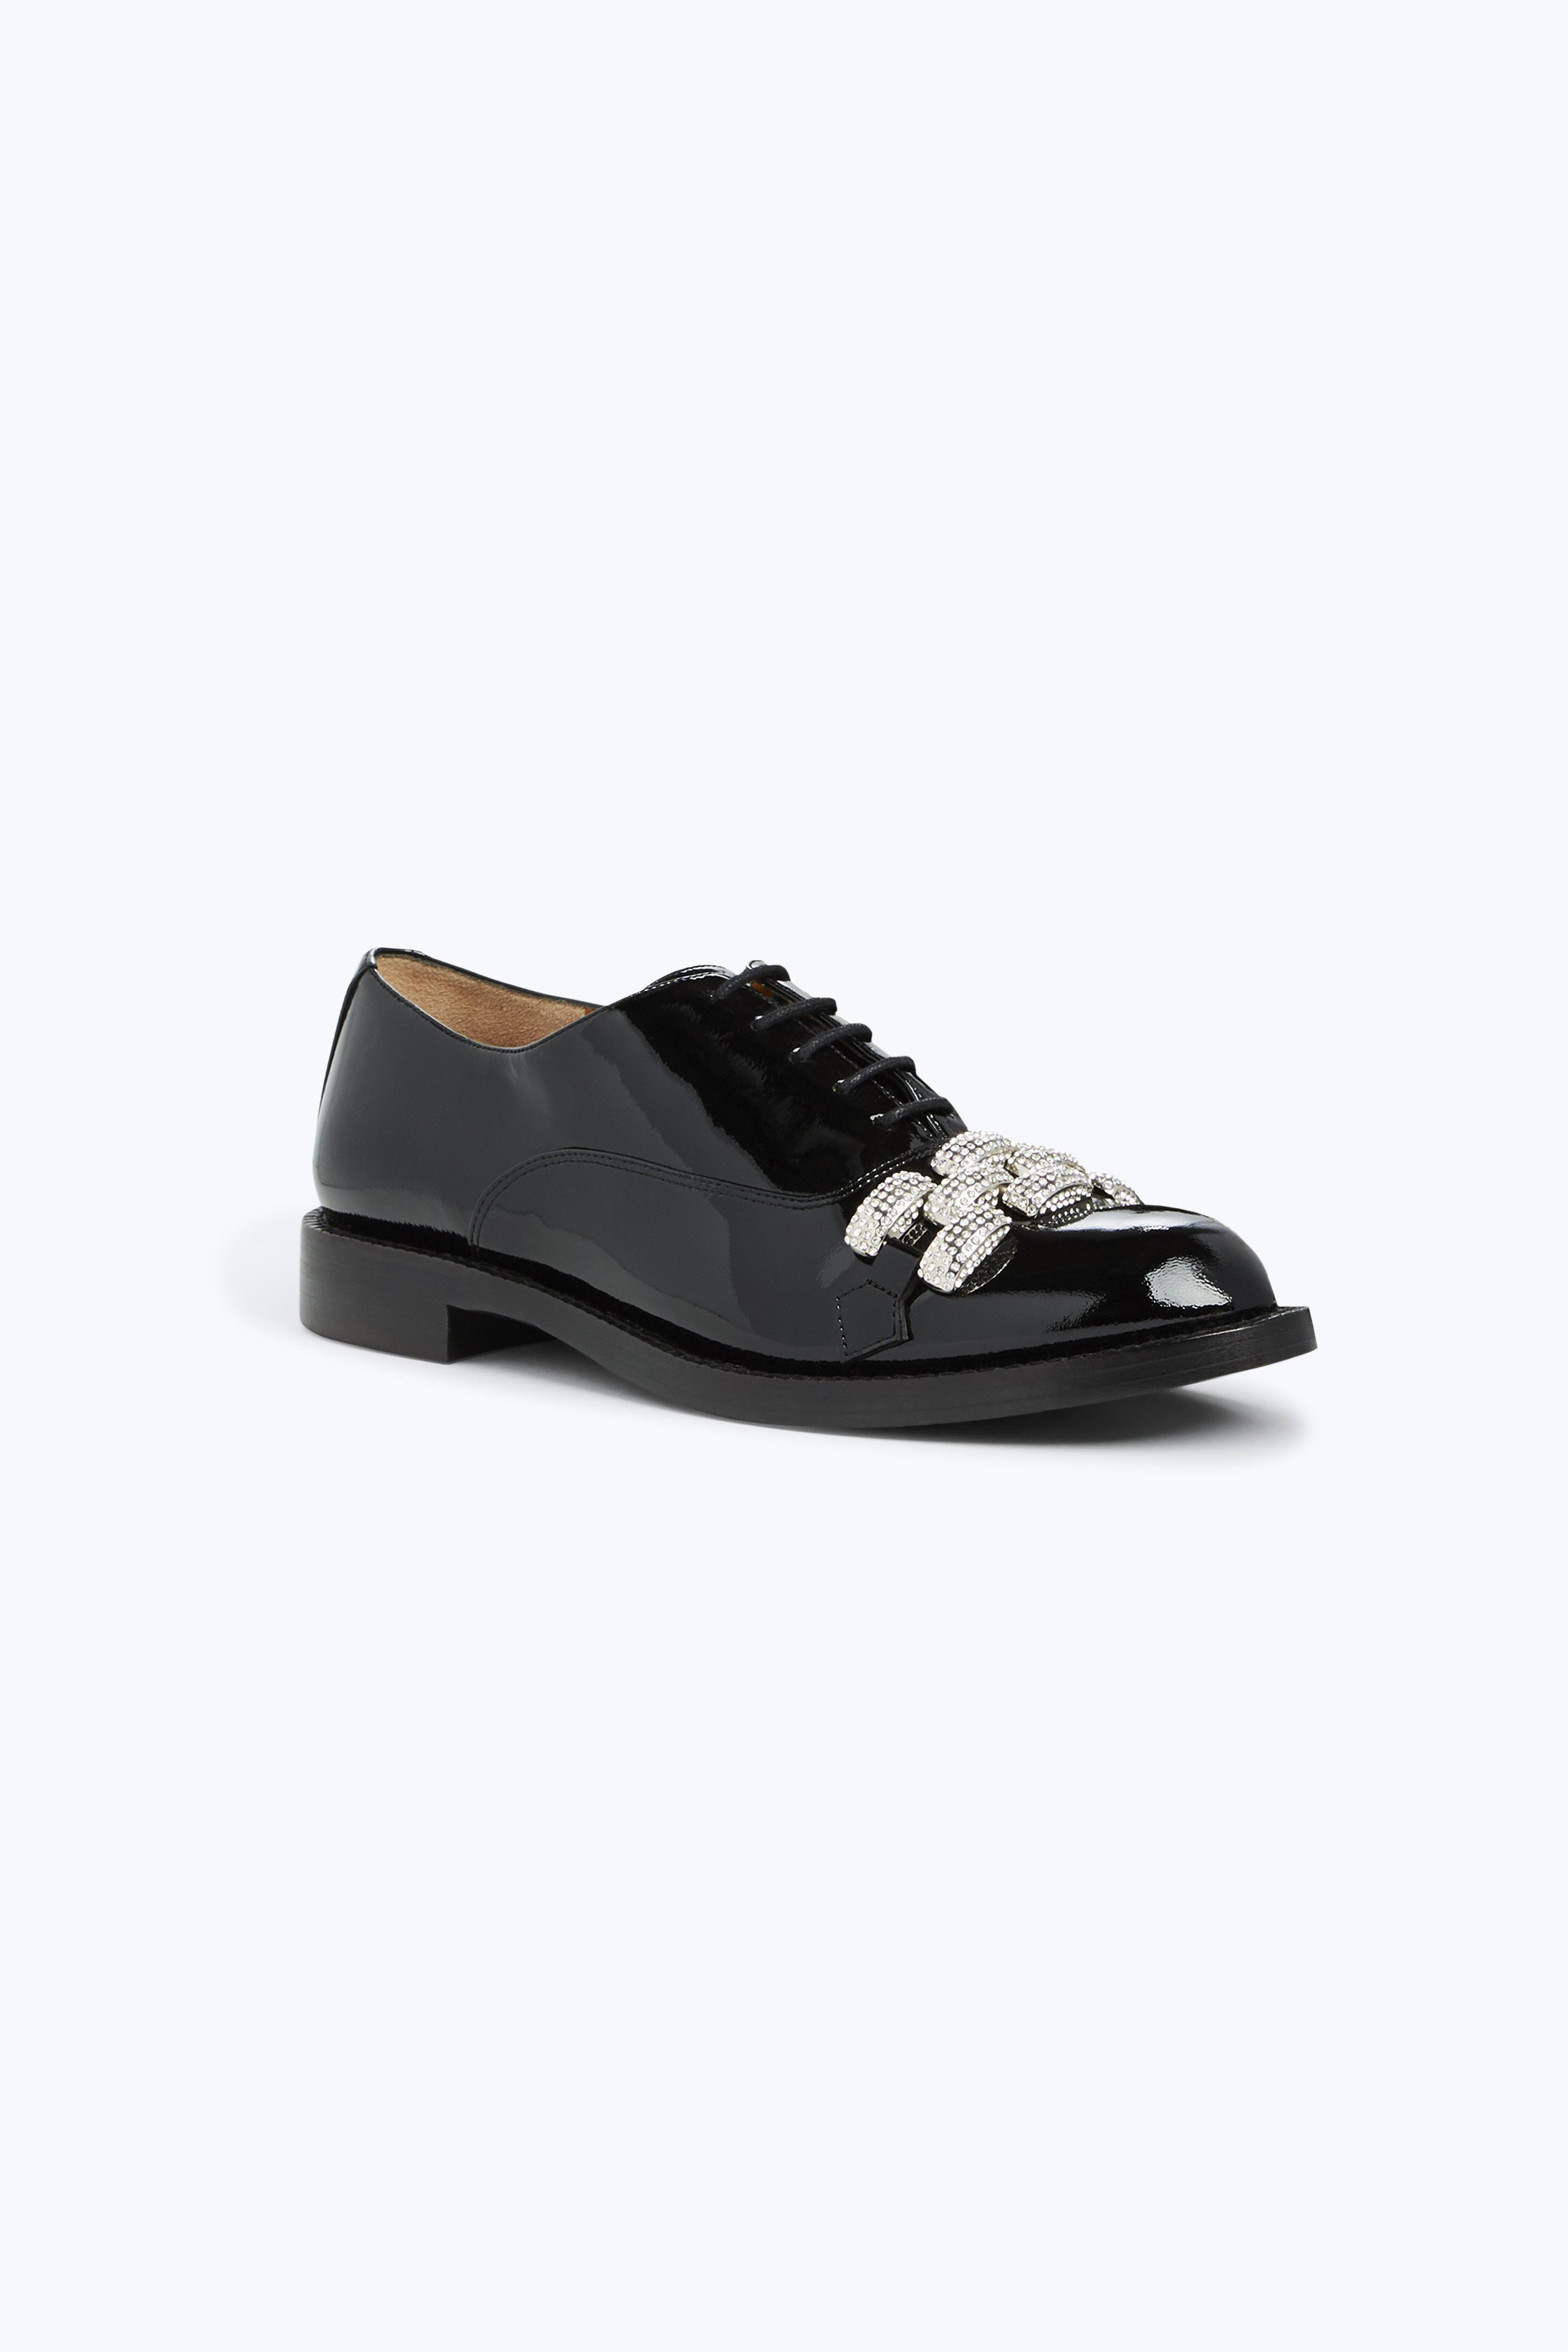 Black Patent Dara Chain-Link Oxfords